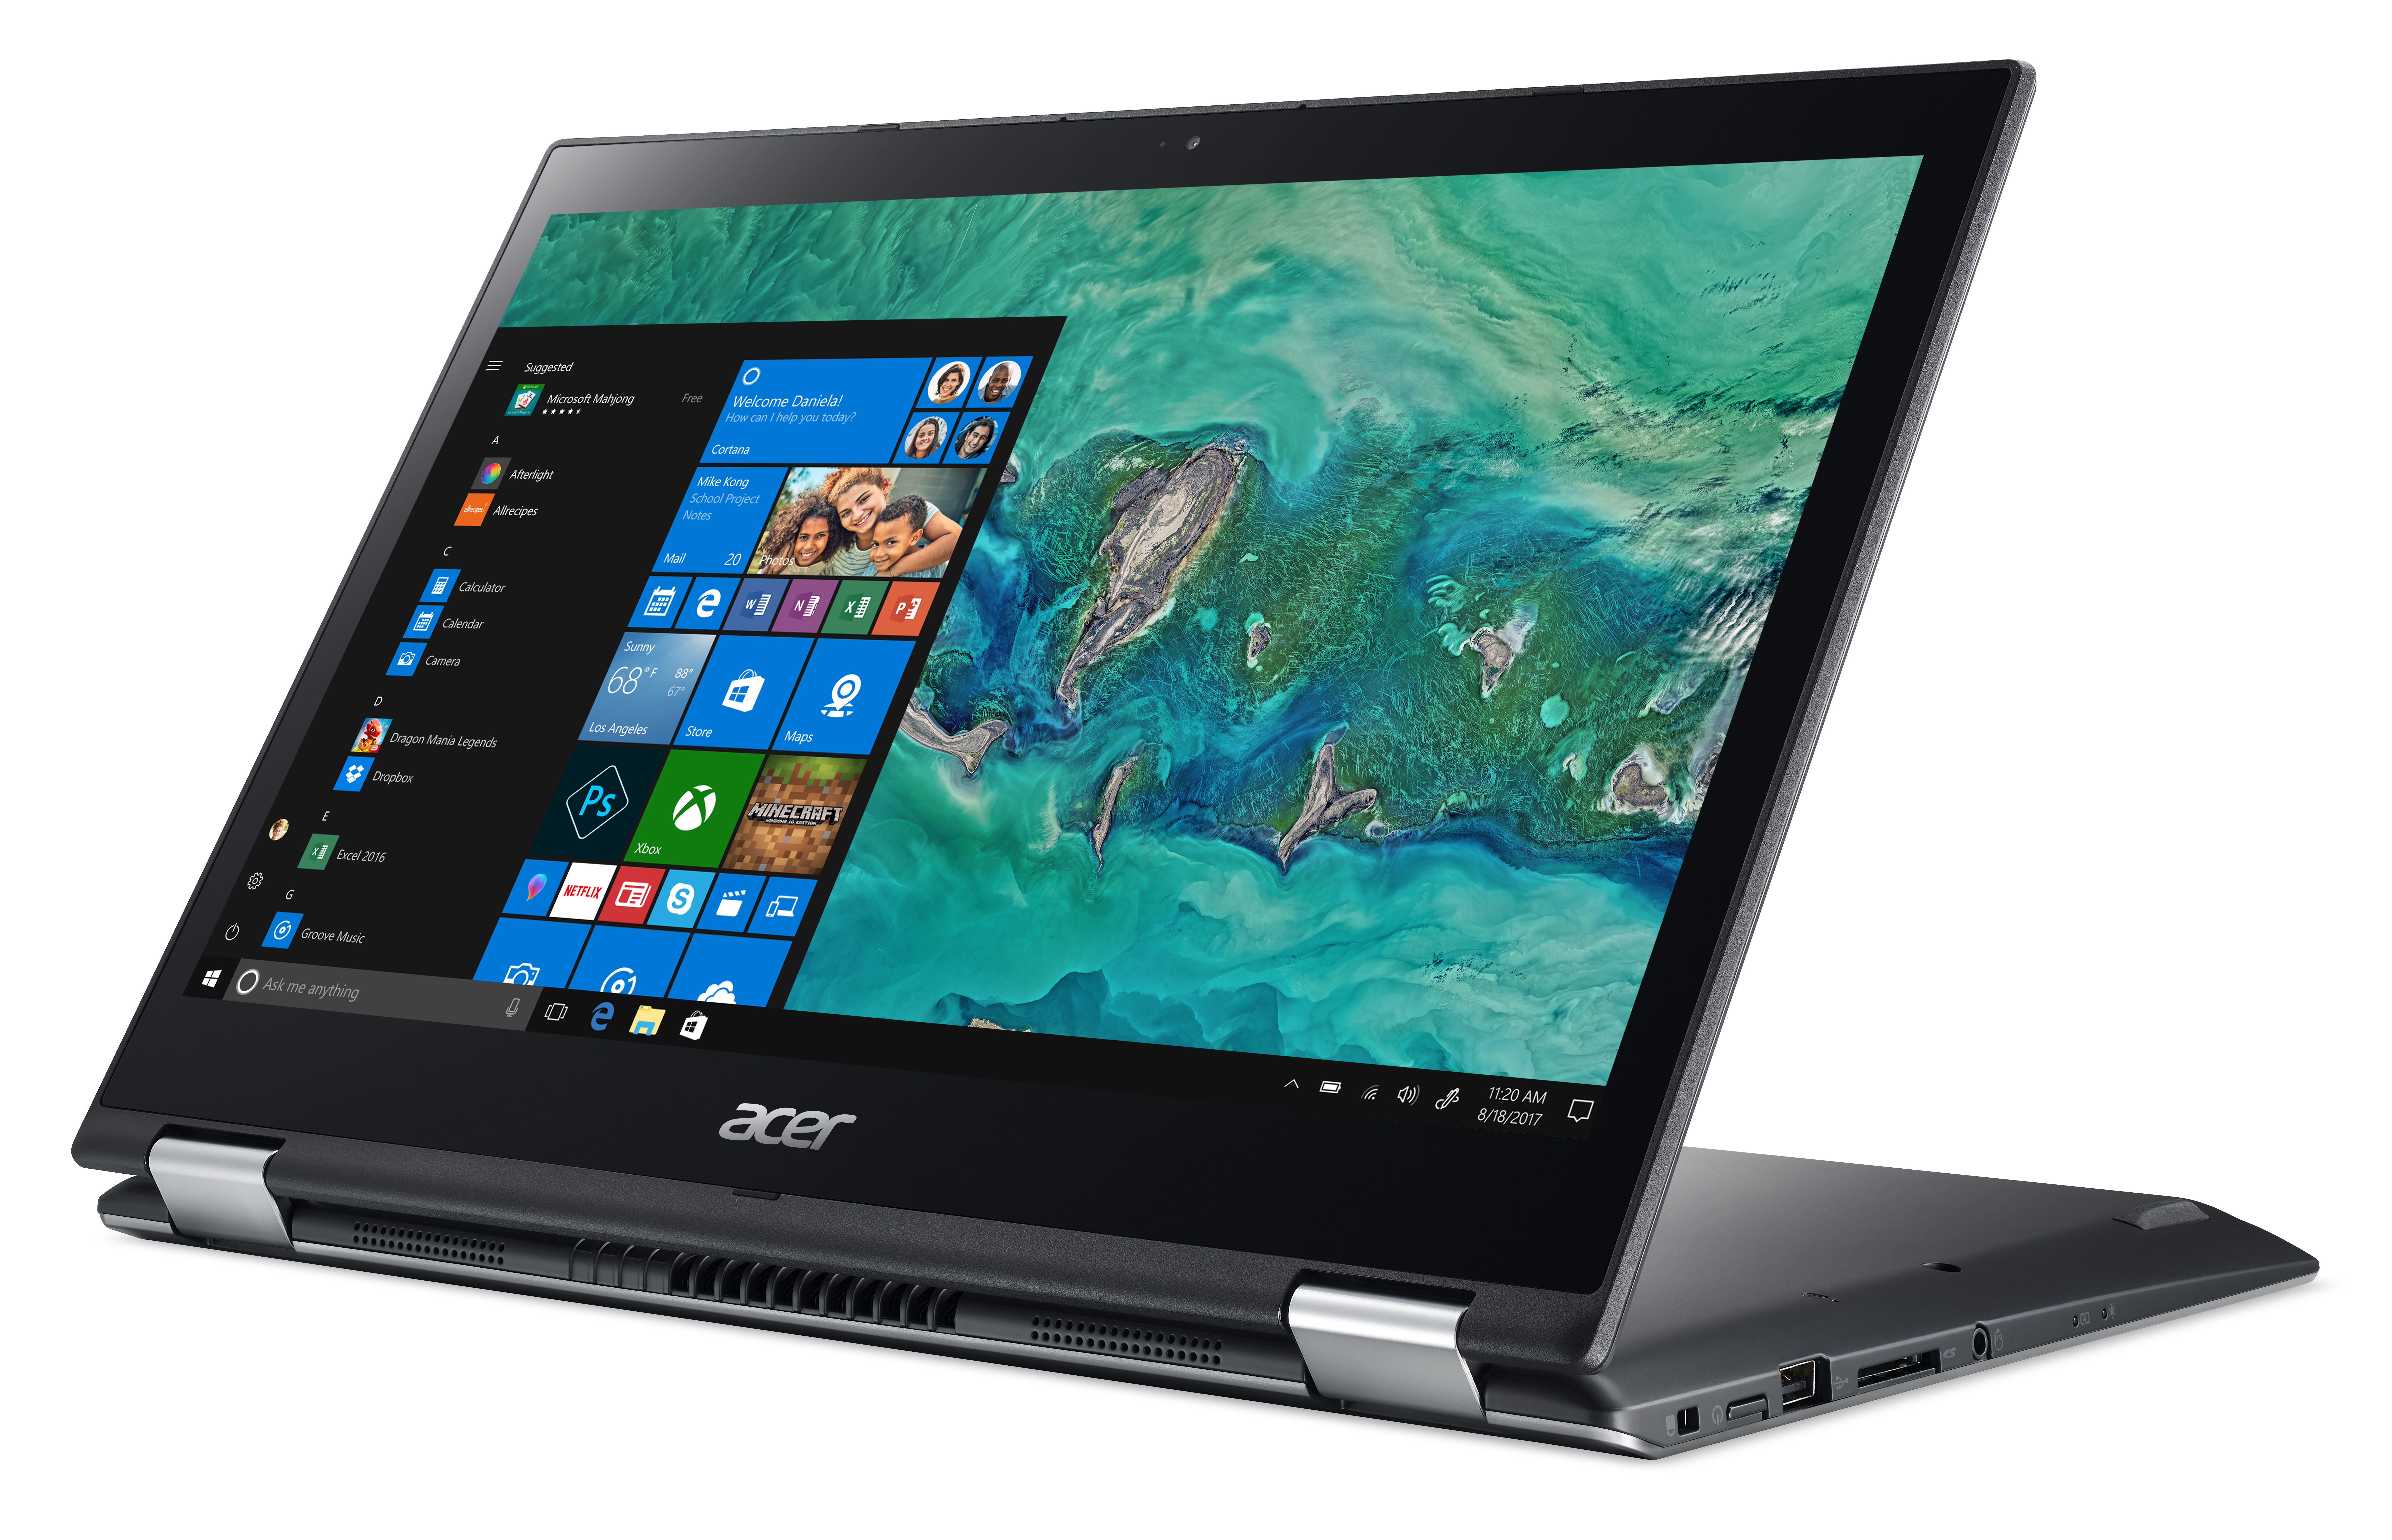 Acer Introduce The Nitro 5 - Designed With Casual Gamers In Mind